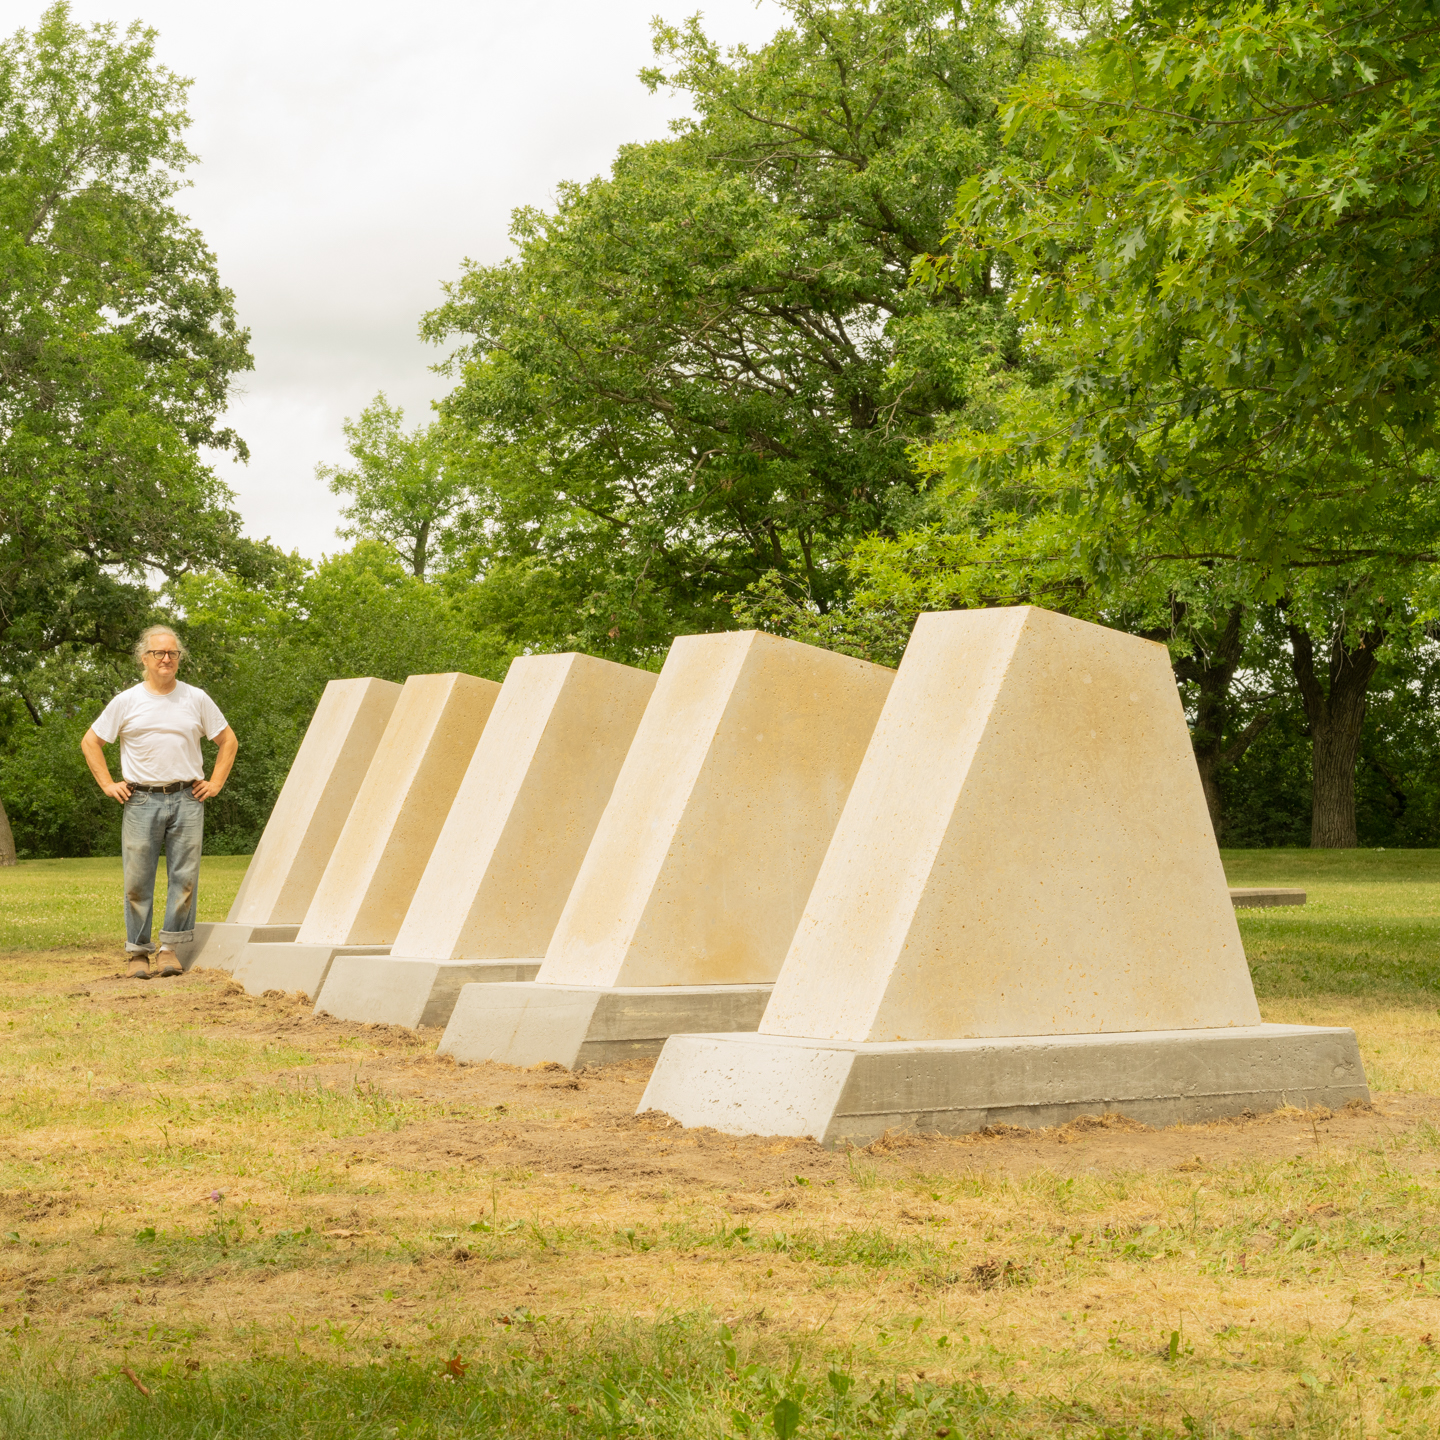 Five large, limestone trapezoids increasing in size in a grassy sculpture garden with trees in background. Sculptor Pete Driessen stands behind his work.